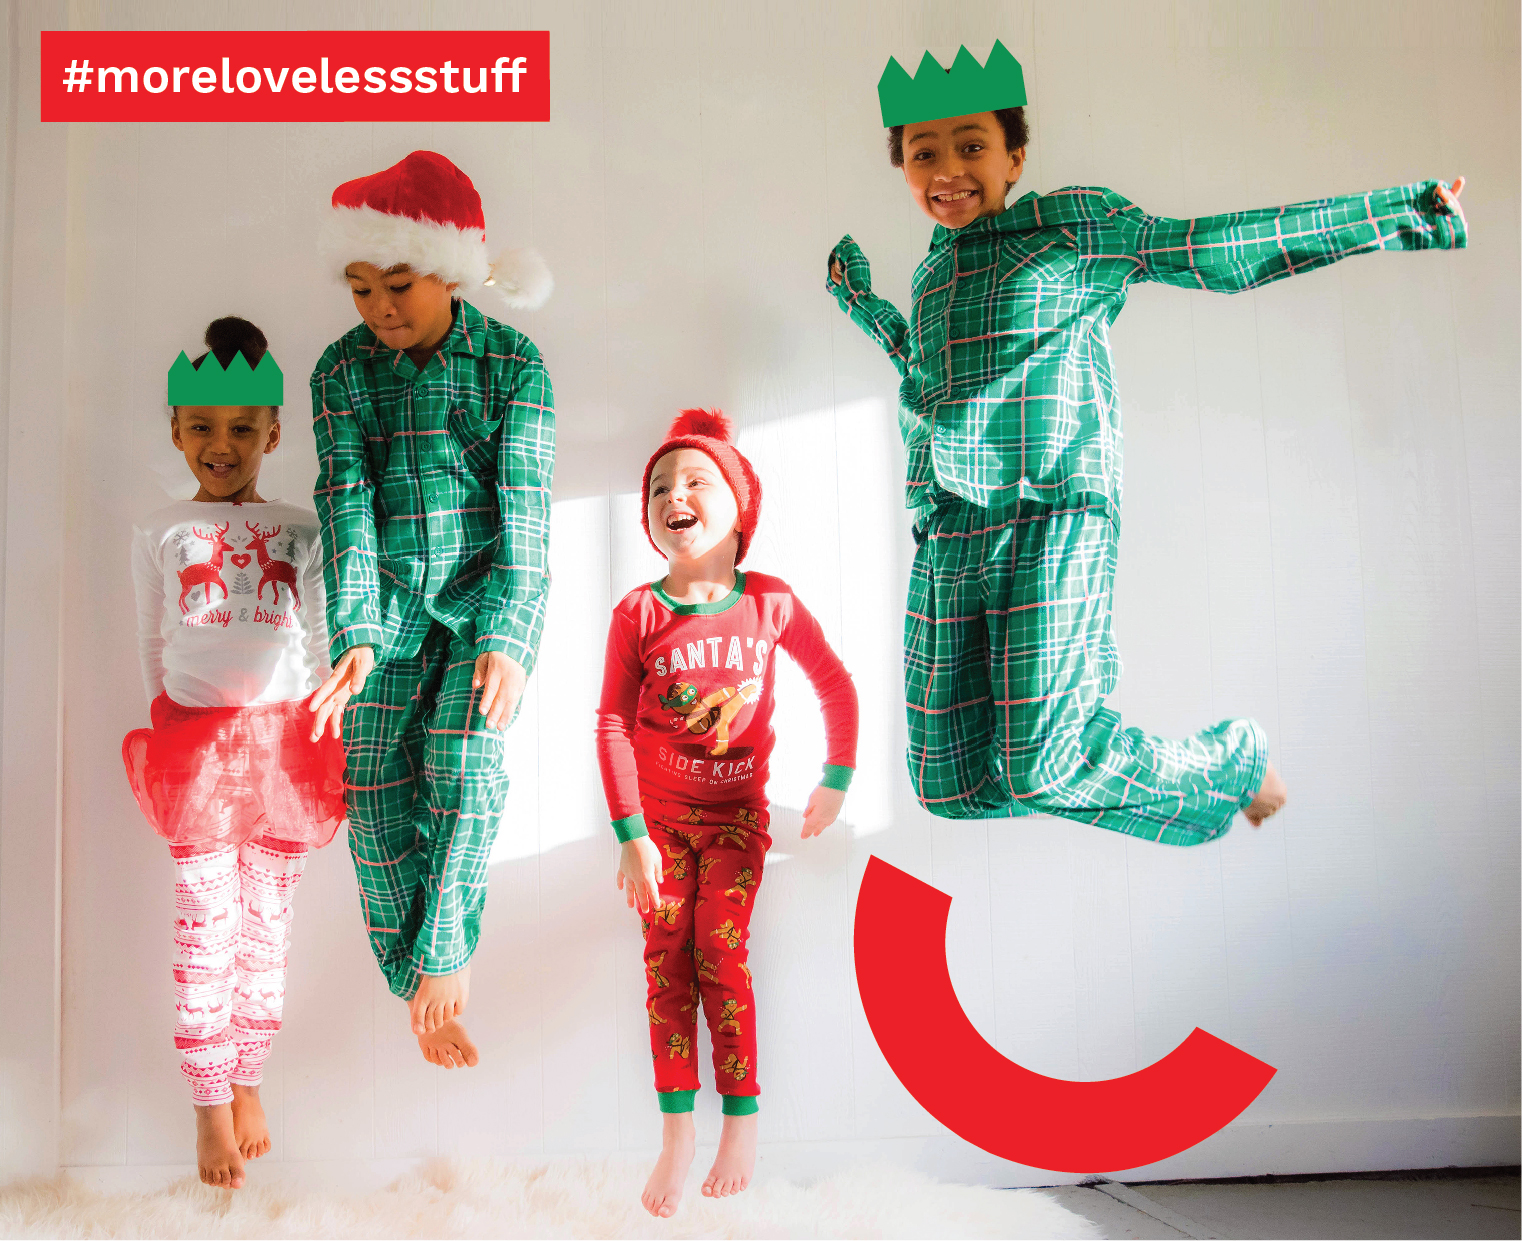 Four children dressed in Christmas outfits jumping in the air. A red box features the text #morelovelessstuff